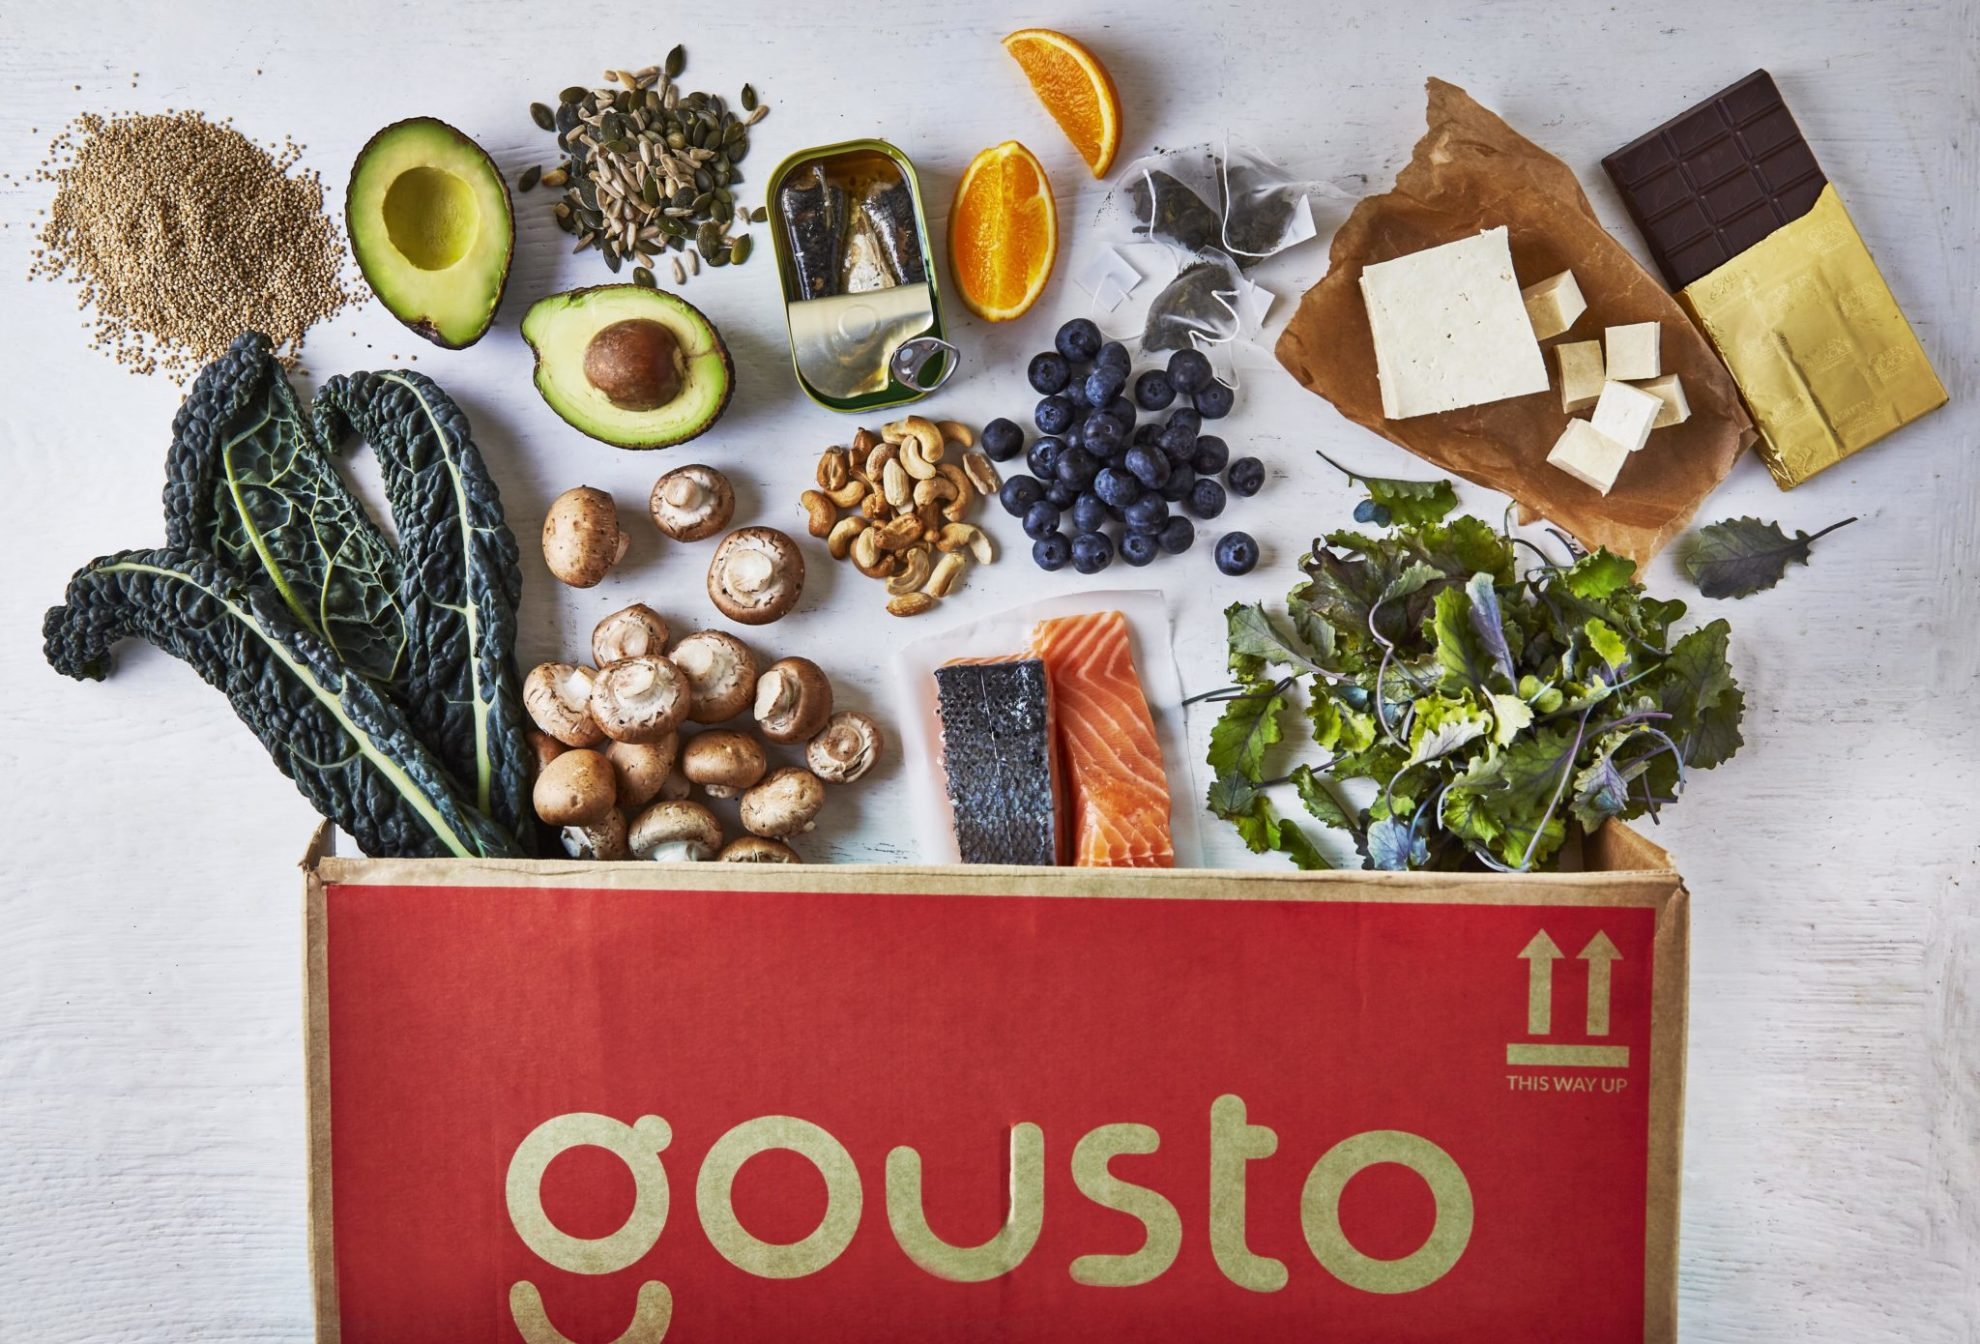 Gousto - Case Study - Markettiers - broadcast specialist creative agency